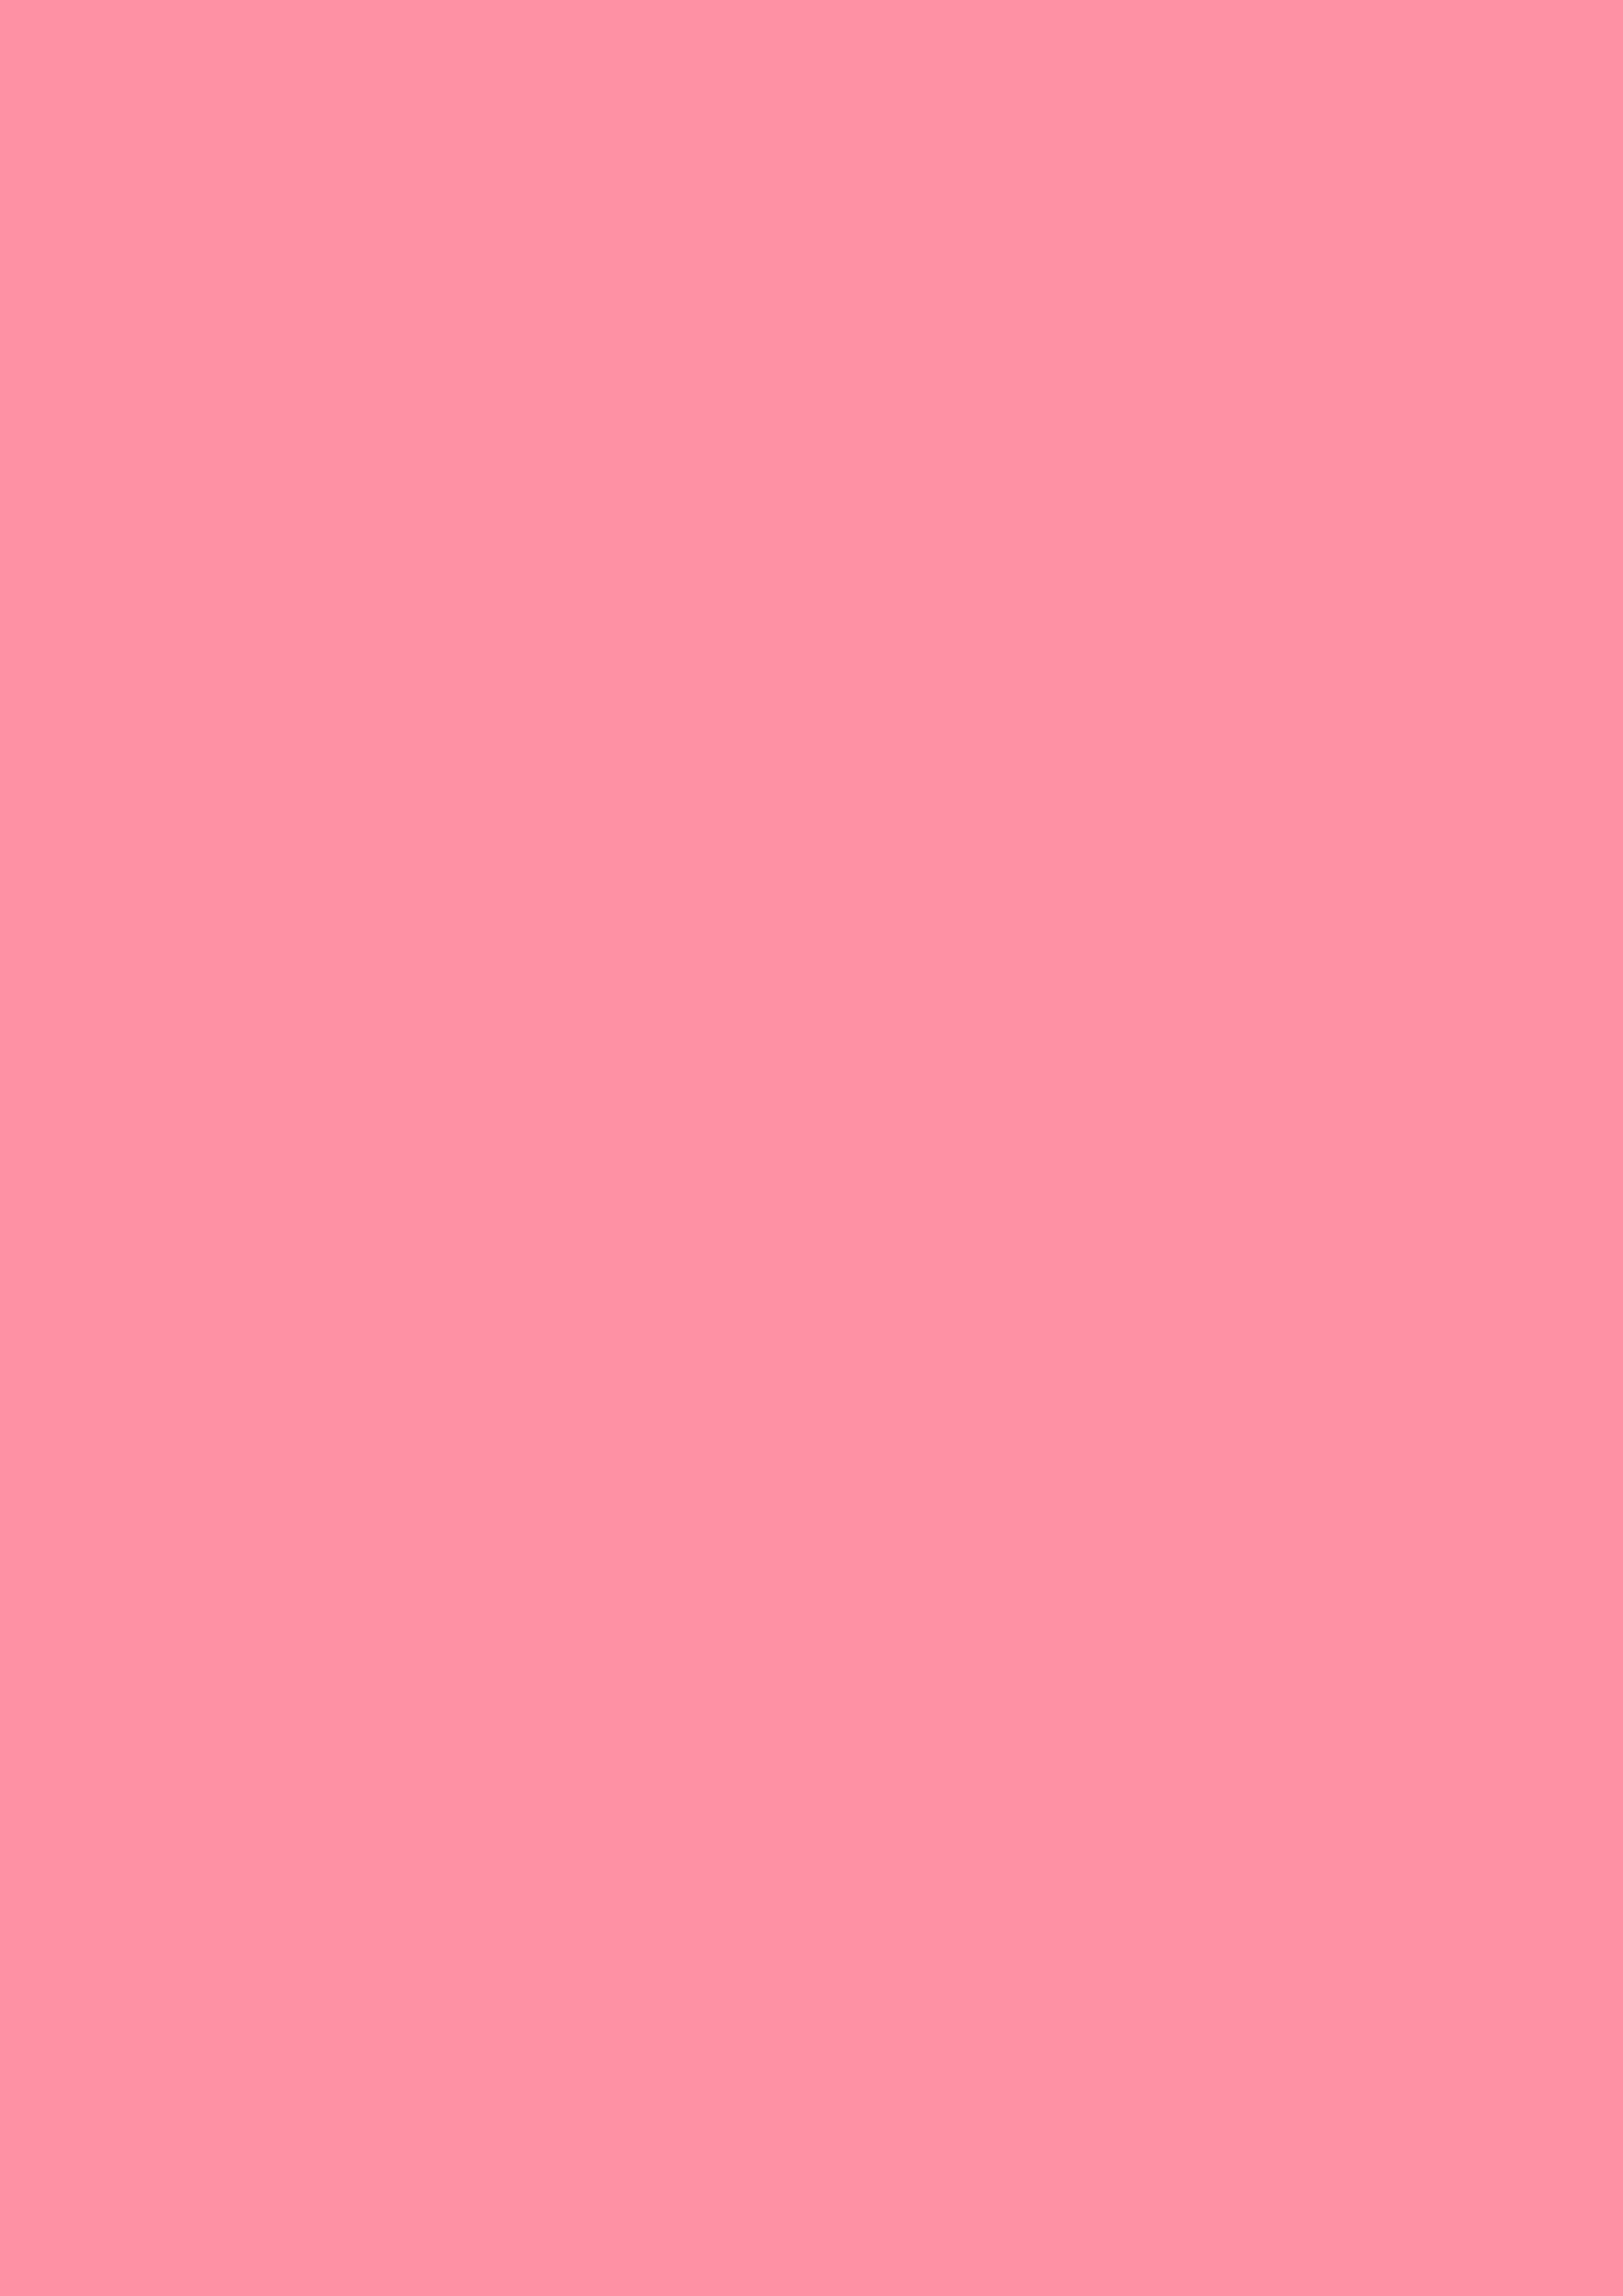 2480x3508 Salmon Pink Solid Color Background